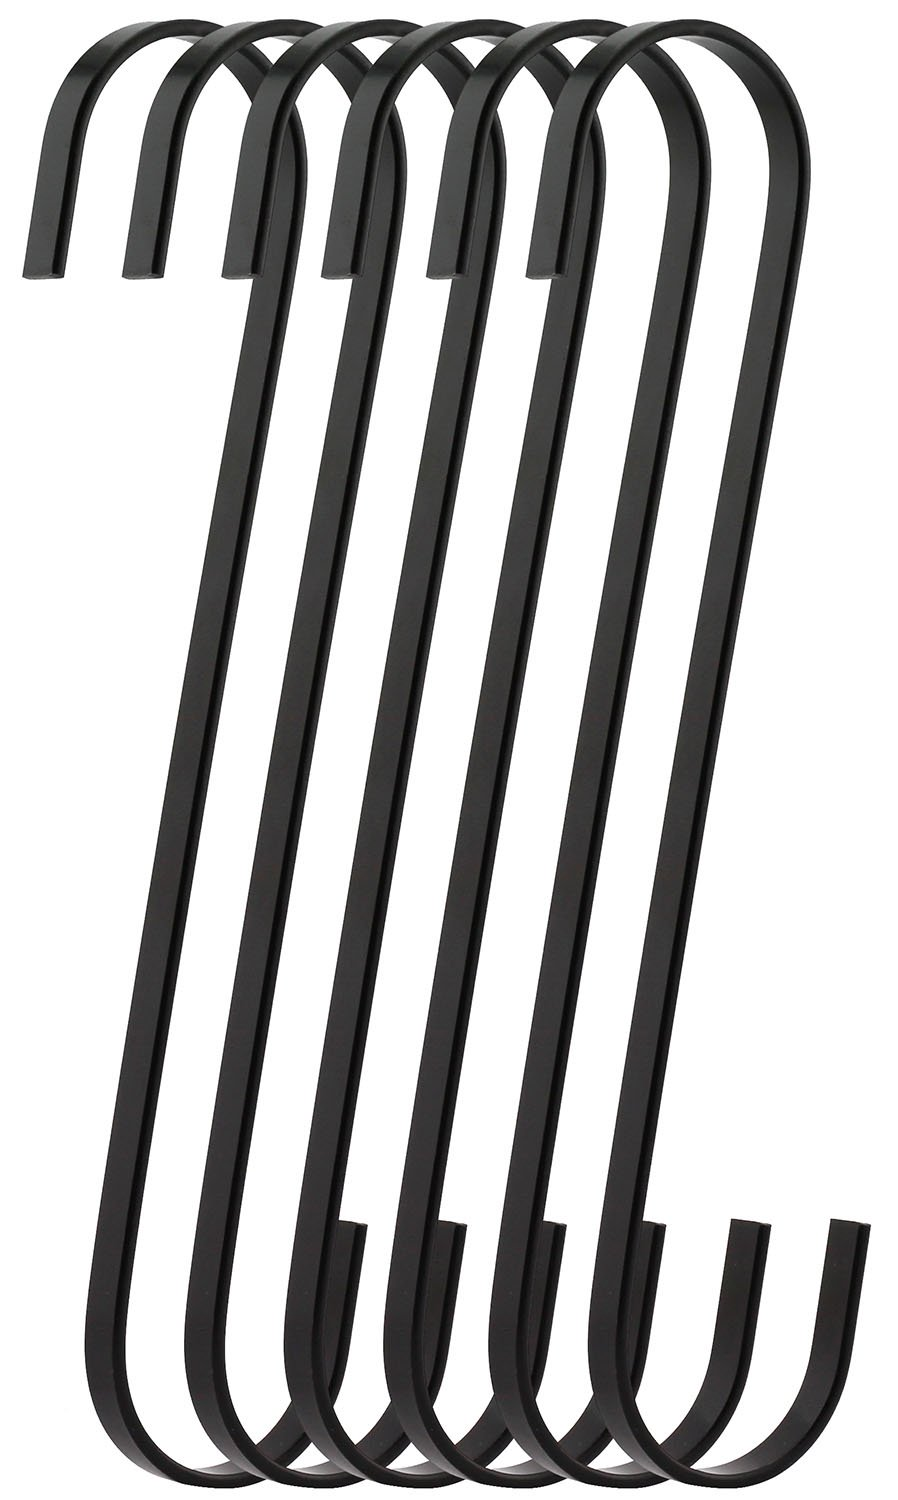 RuiLing 6-Pack 9 Inch Black Chrome Finish Steel Hanging Flat Hooks - S Shaped Hook Heavy-Duty S Hooks, for Kitchenware, Pots, Utensils, Plants, Towels, Gardening Tools, Clothes